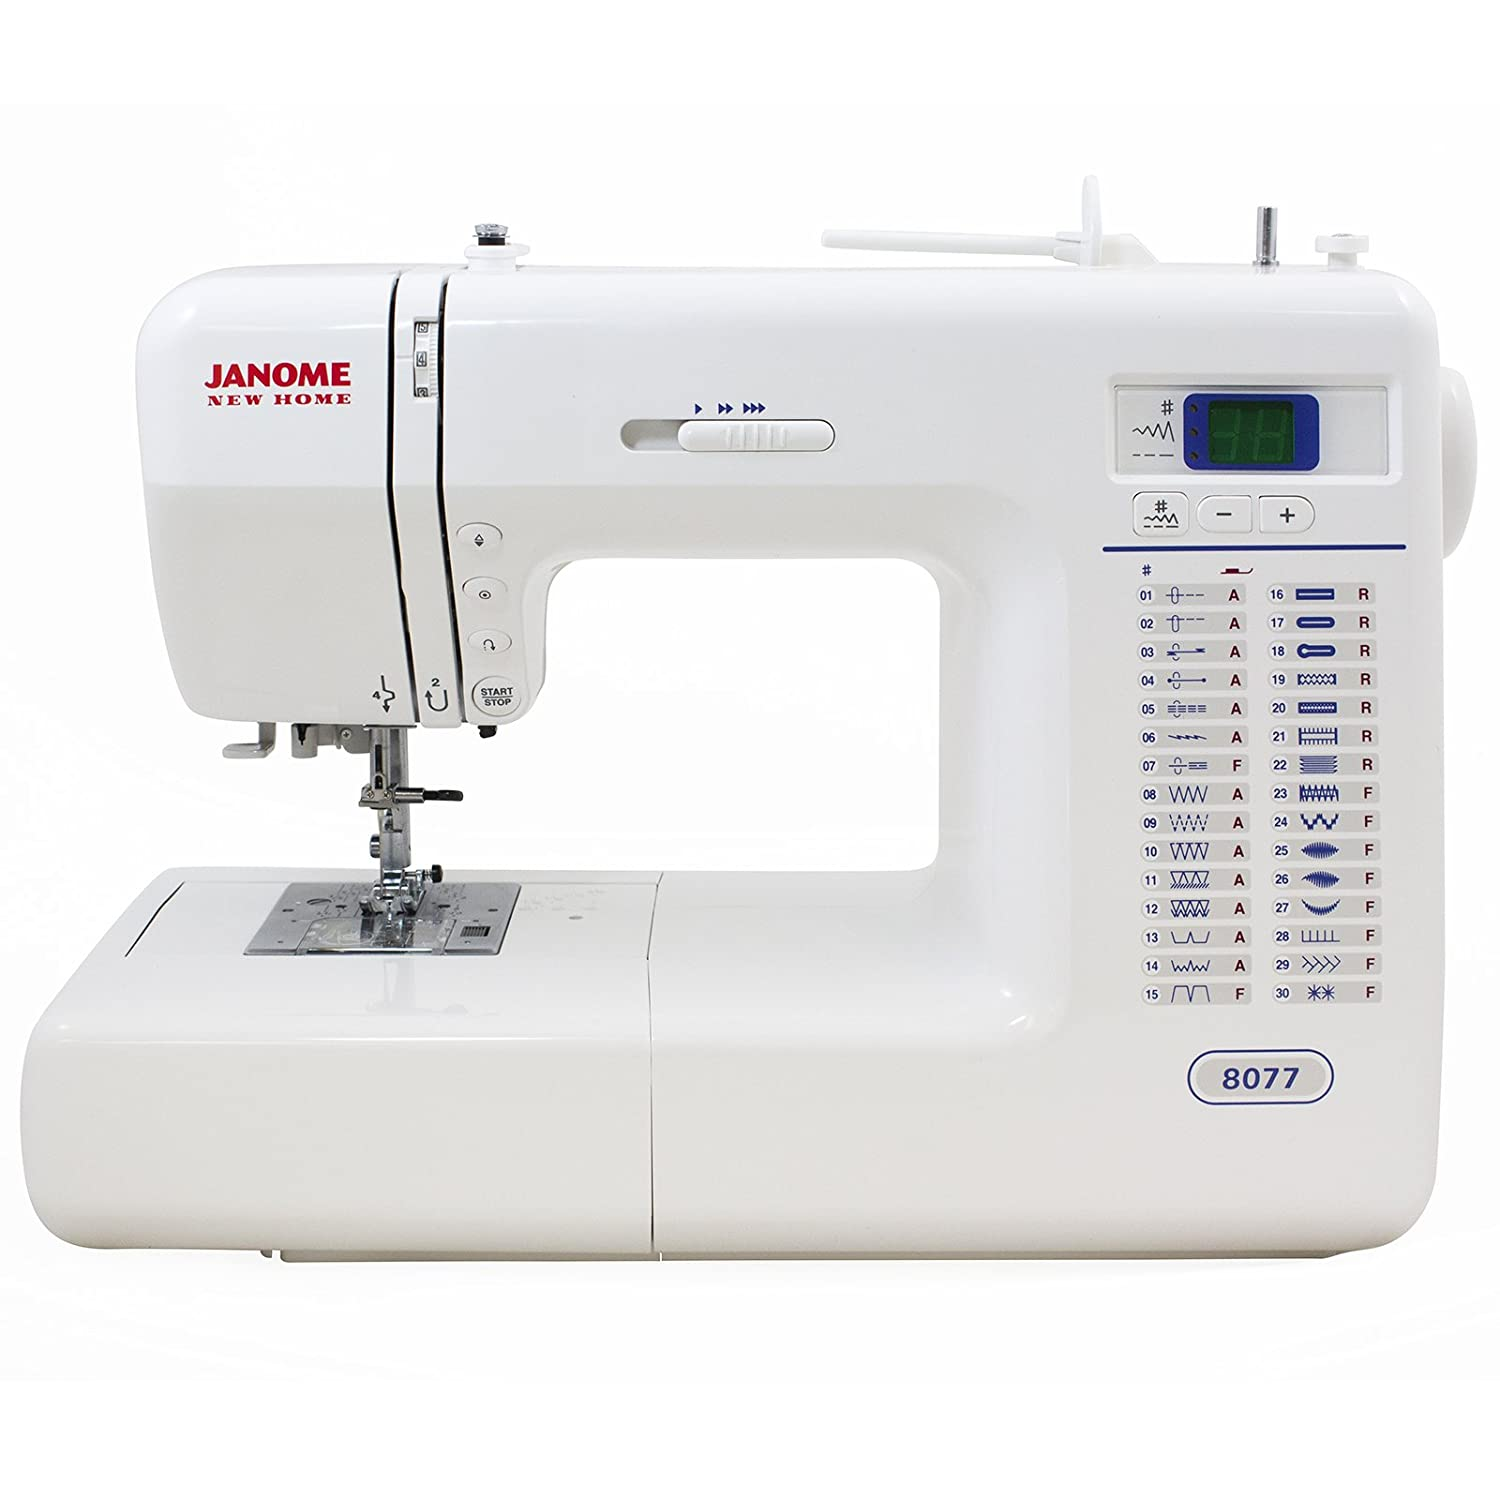 Janome 8077 Computerized Sewing Machine Reviews In 2019